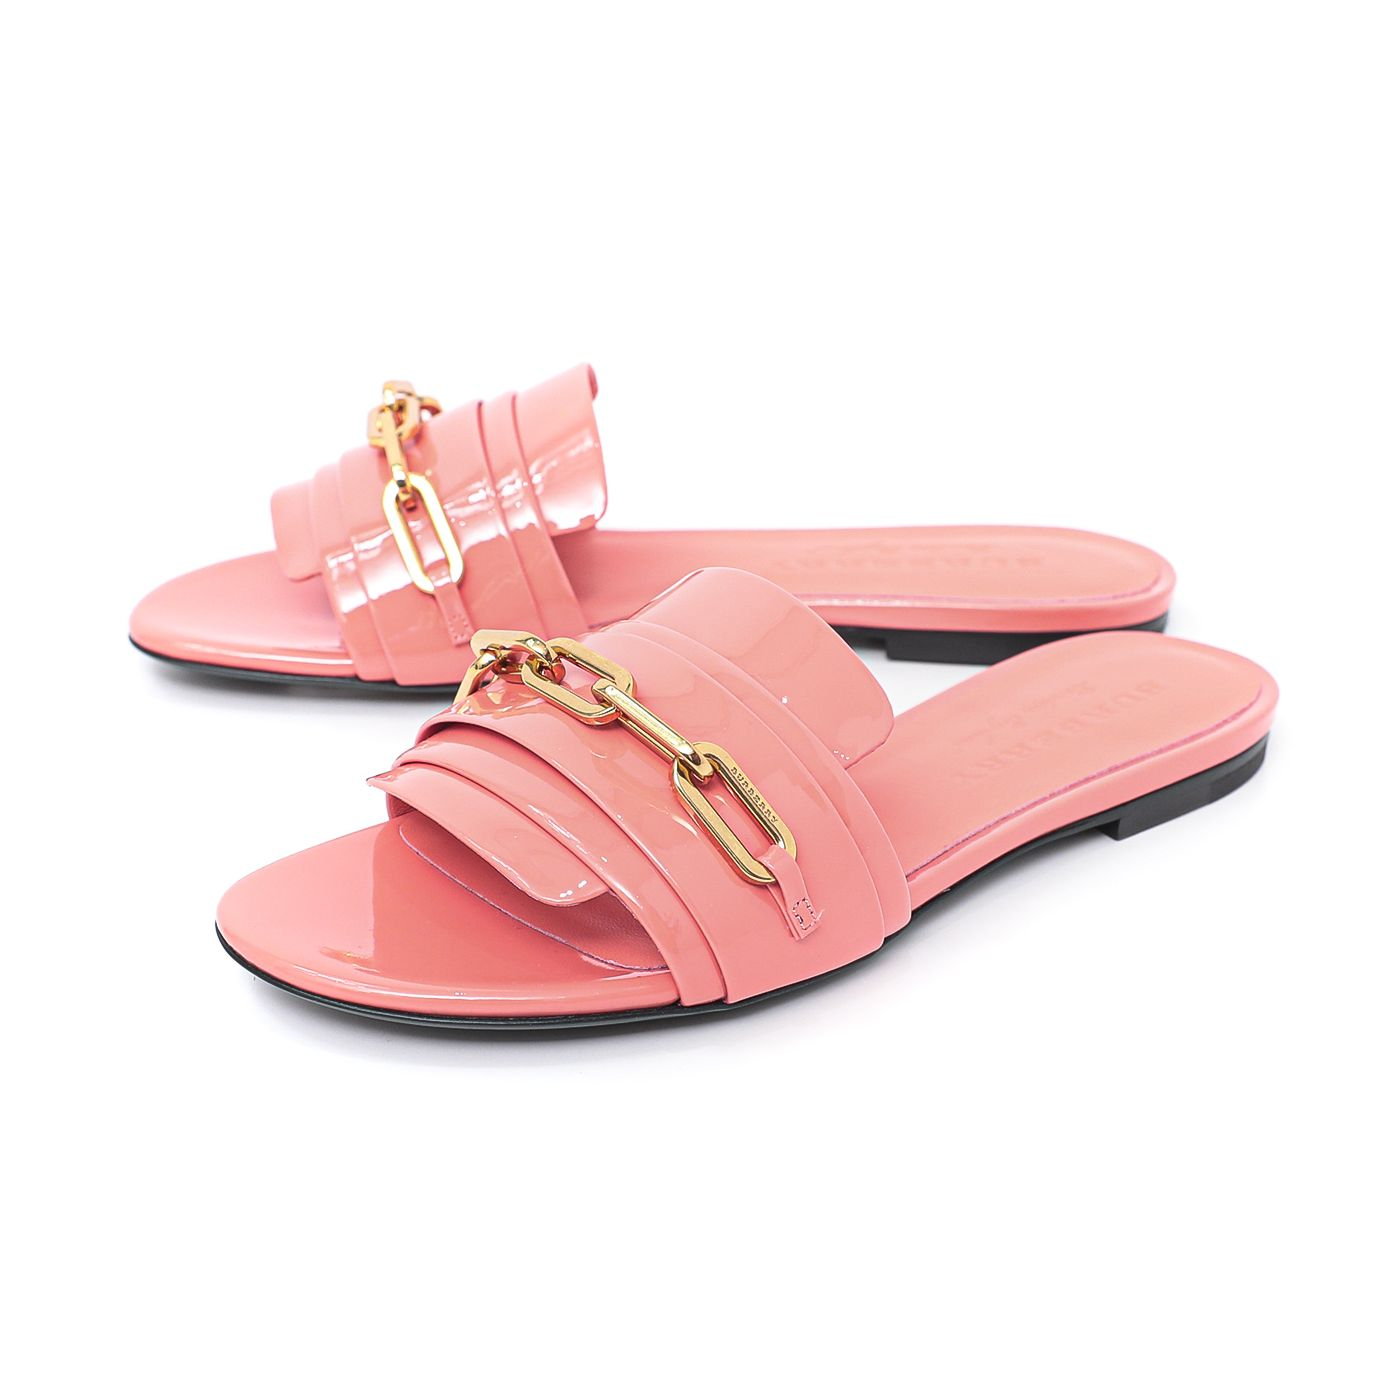 Burberry Pink Coral Chain Coleford Flat Sandals 37